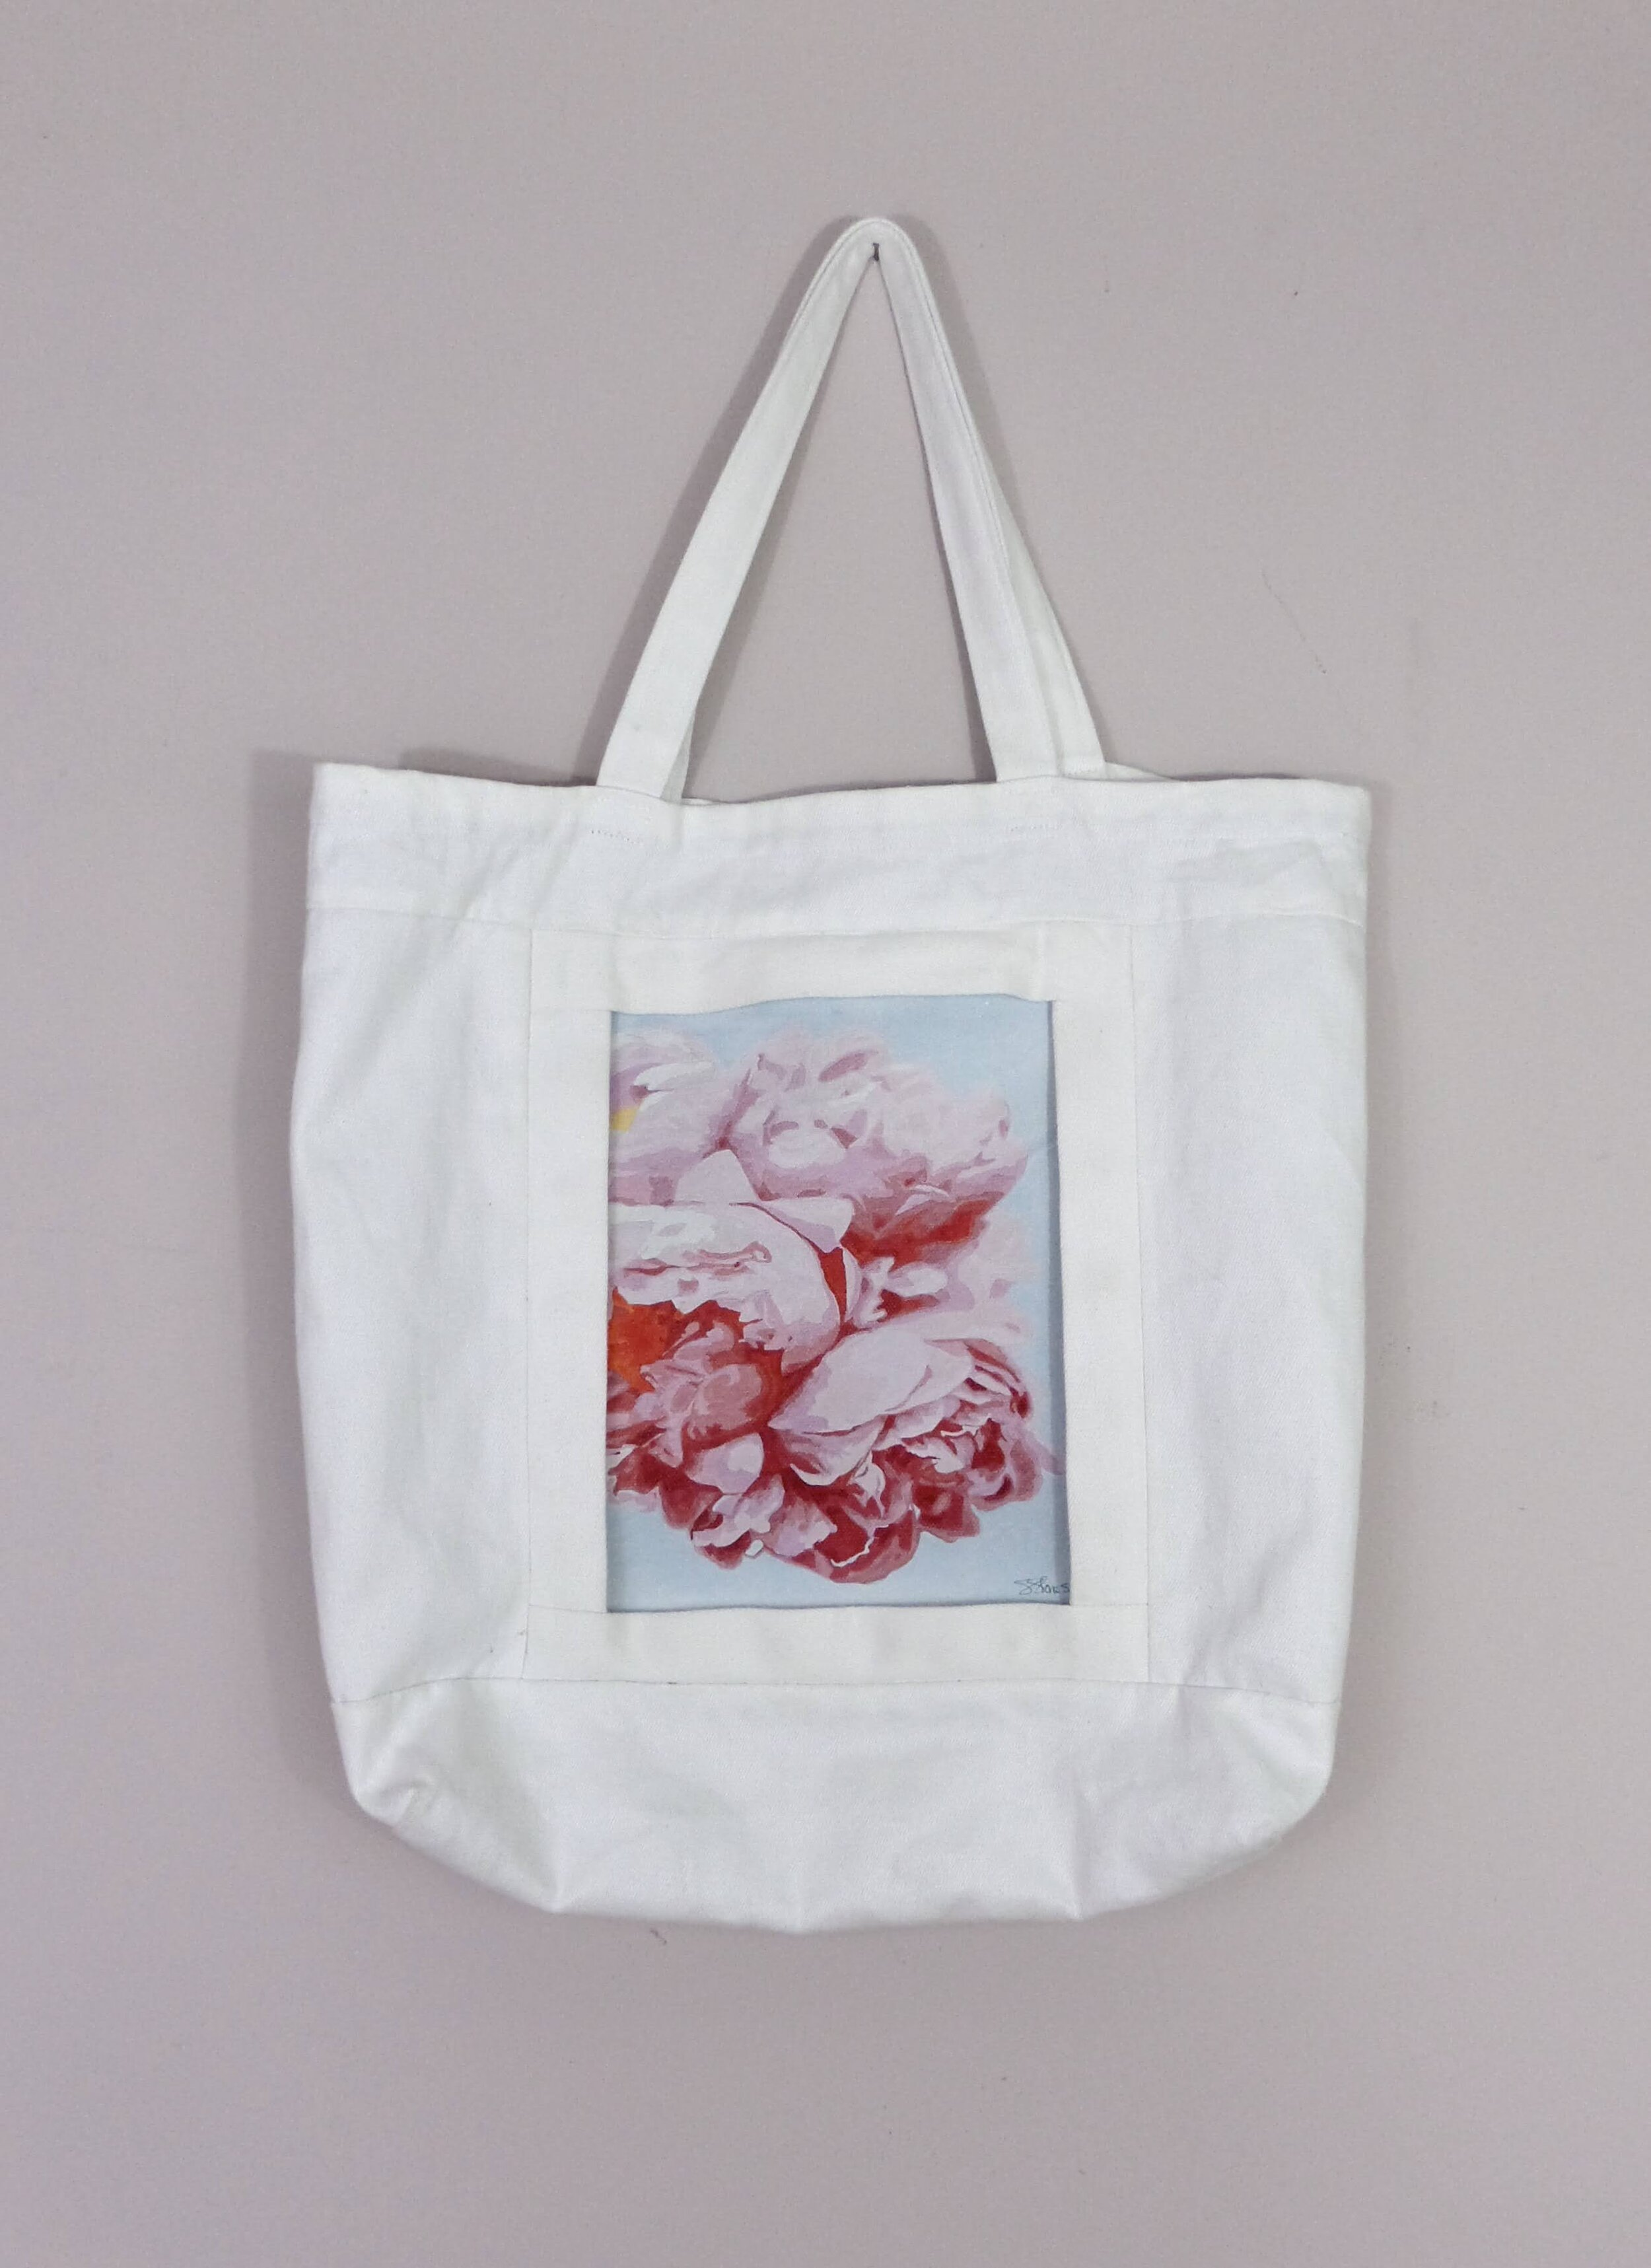 A Quarantine Rose Print Shareables Bag by Sharon Stone and Inclusivi-Tee